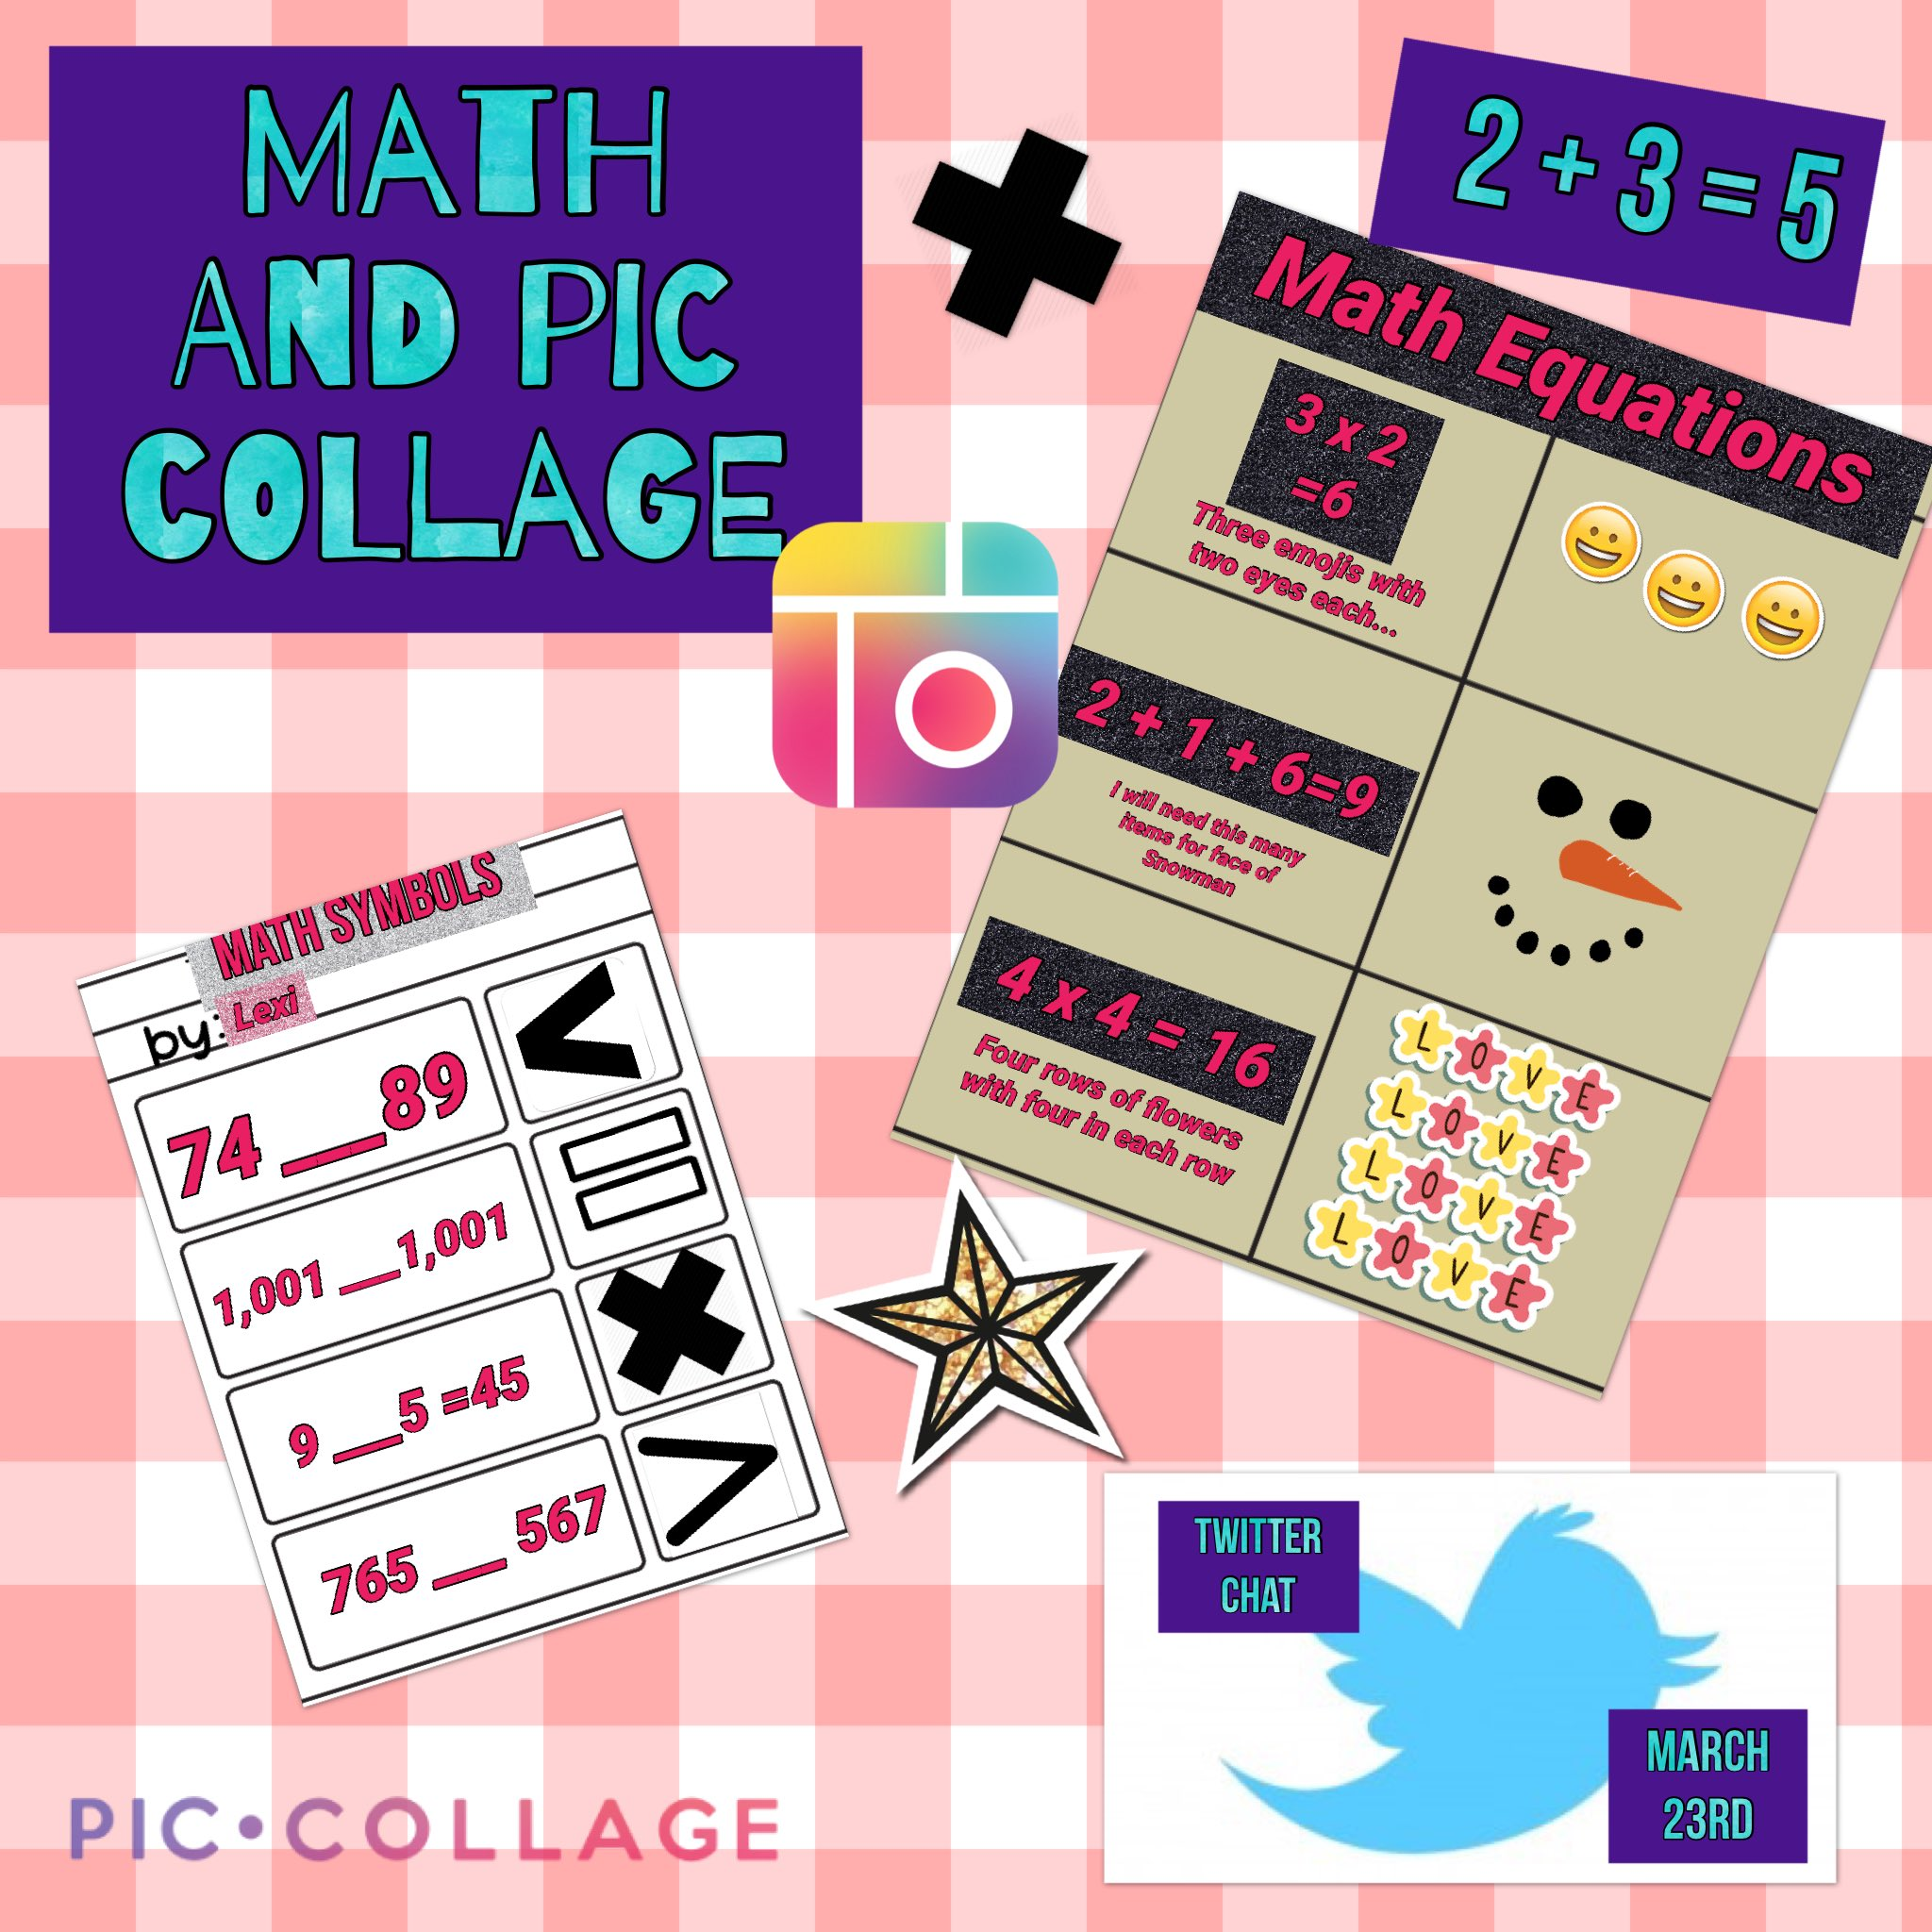 Twitter chat tonight 6CST about using @PicCollage in your math classes! #PicCollagechat #piccollageedu #edtech https://t.co/yiNlOkZCsy